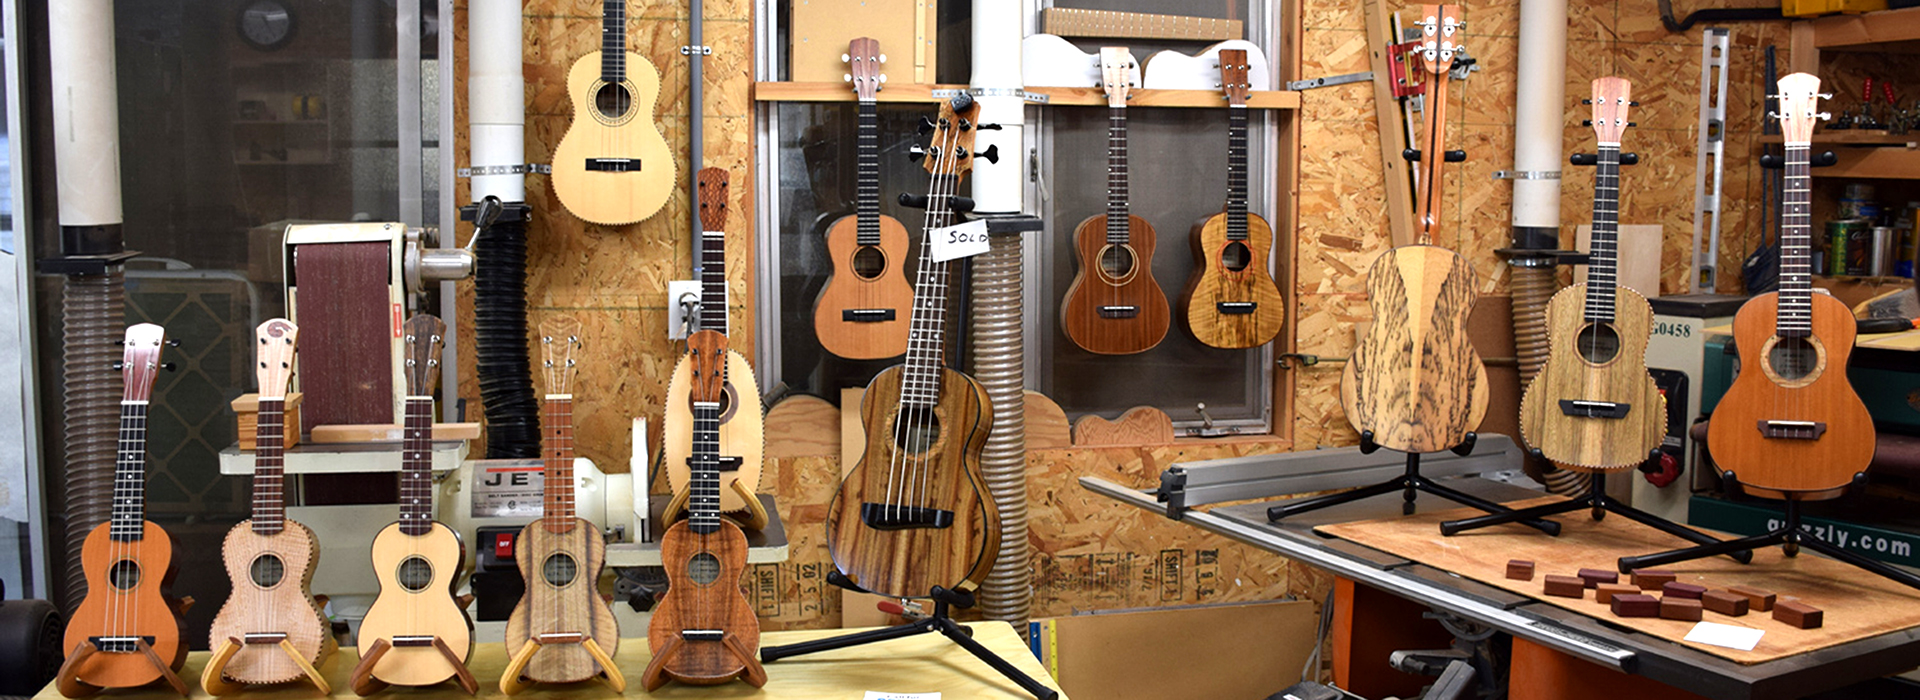 Howard Reploge's ukulele studio